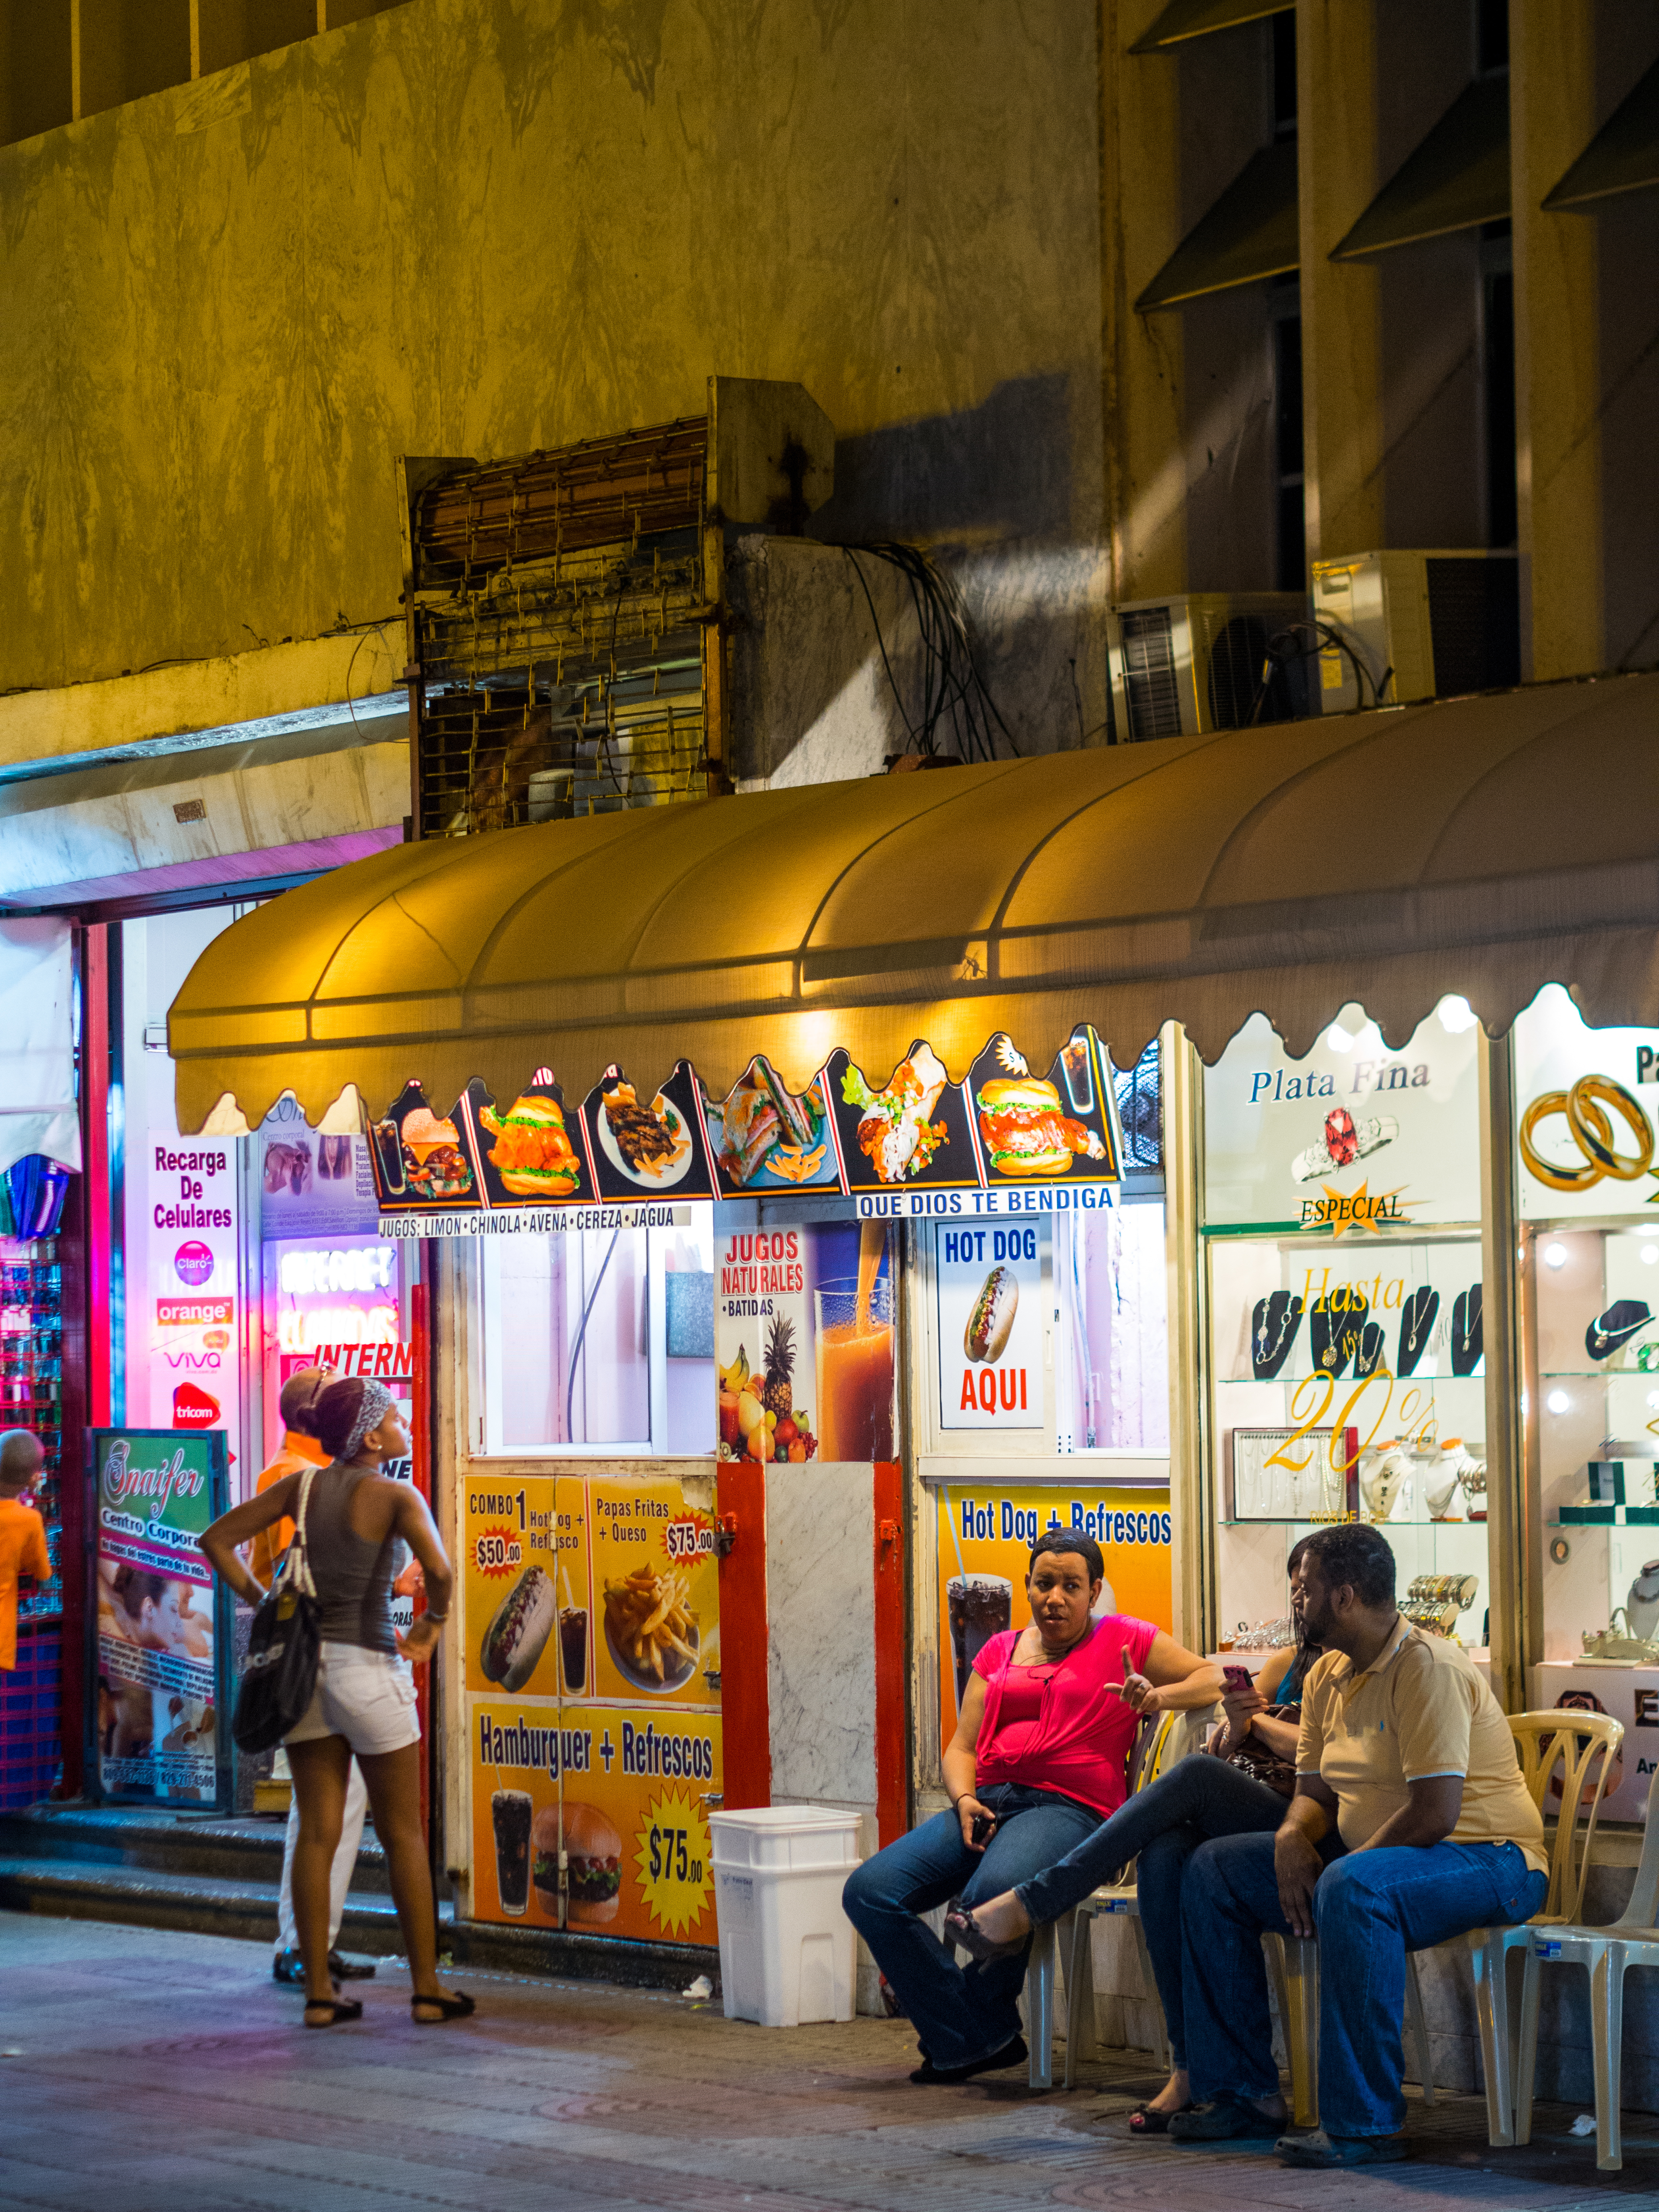 Santo Domingo, Dominican Republic - February 23, 2013: People enjoy the early hours of the evening at a basic street side cafe in the Zona Colonial or historical district of Santo Domingo.